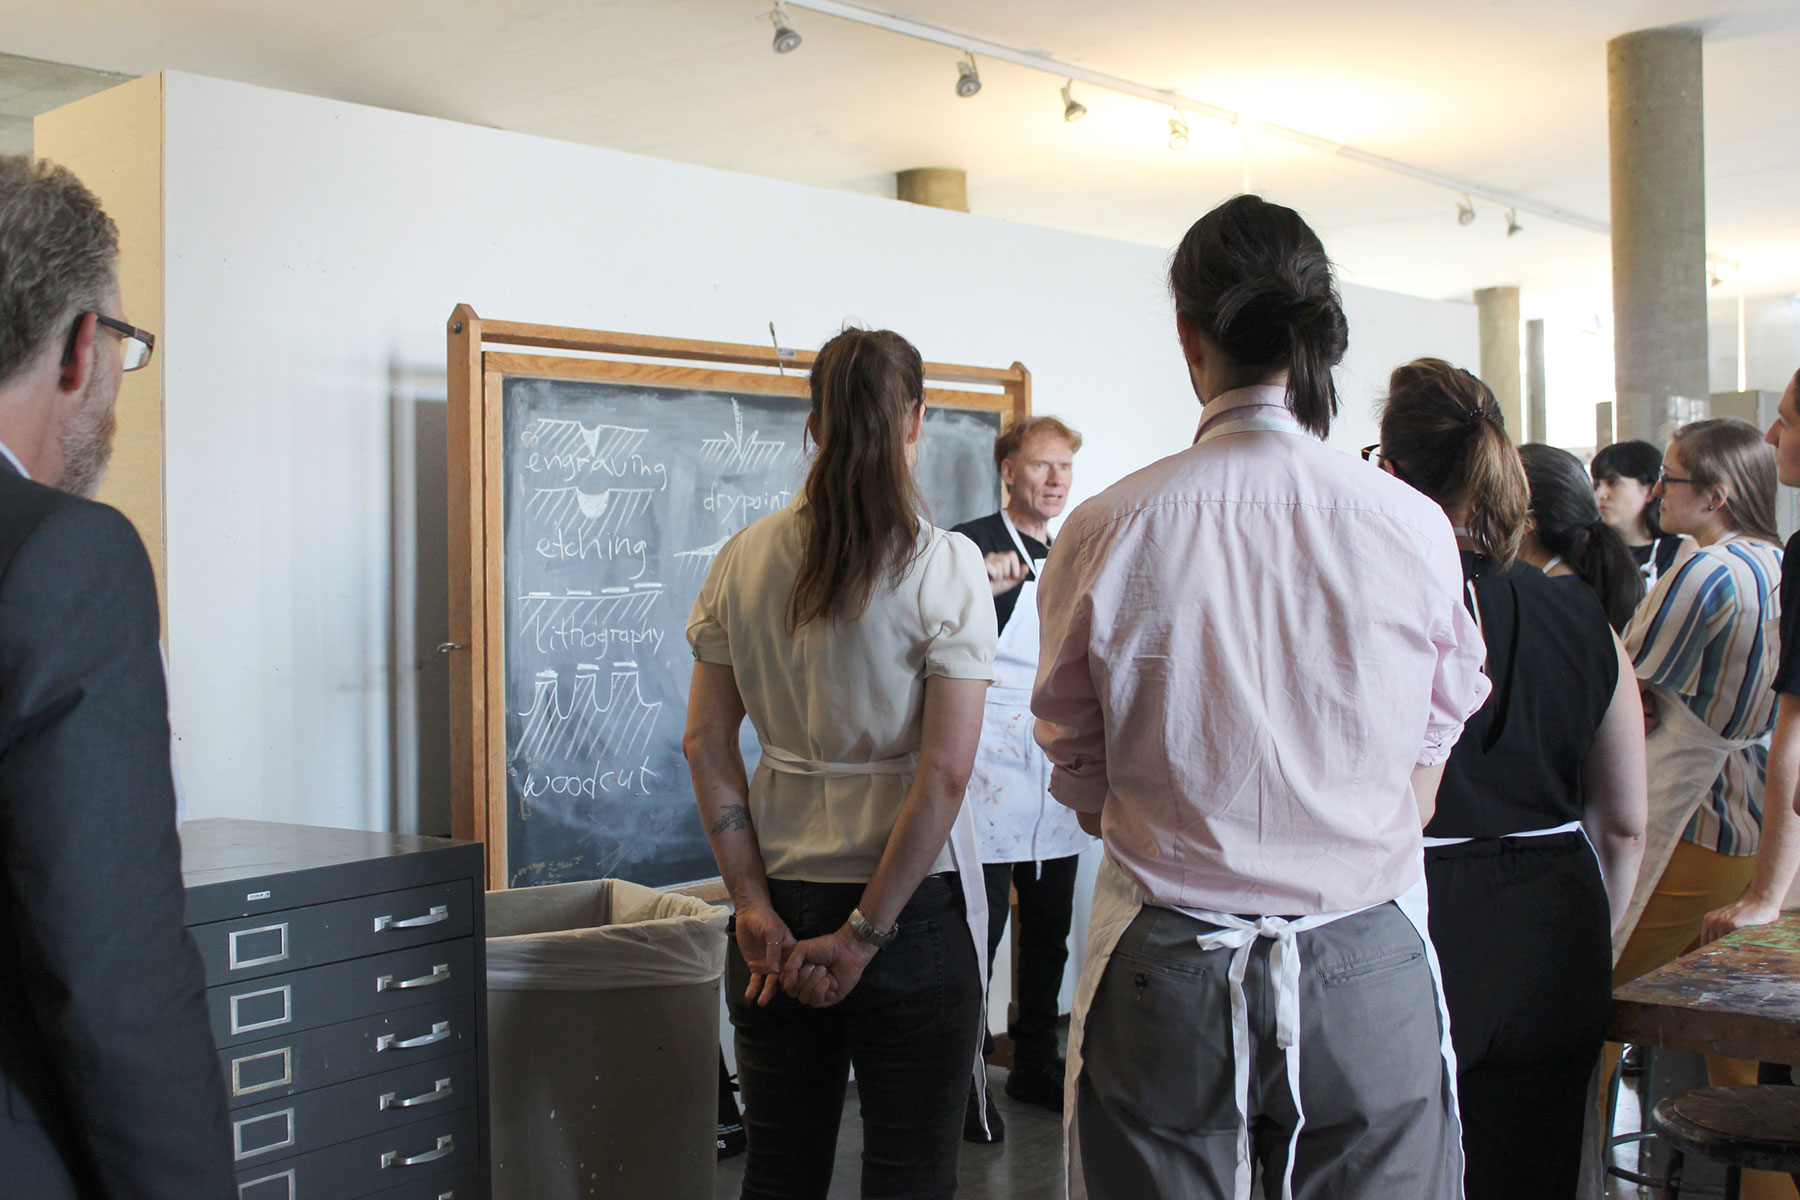 Stijnman, wearing a white apron, stands in front of a chalkboard explaining various printmaking techniques to several workshop participants.